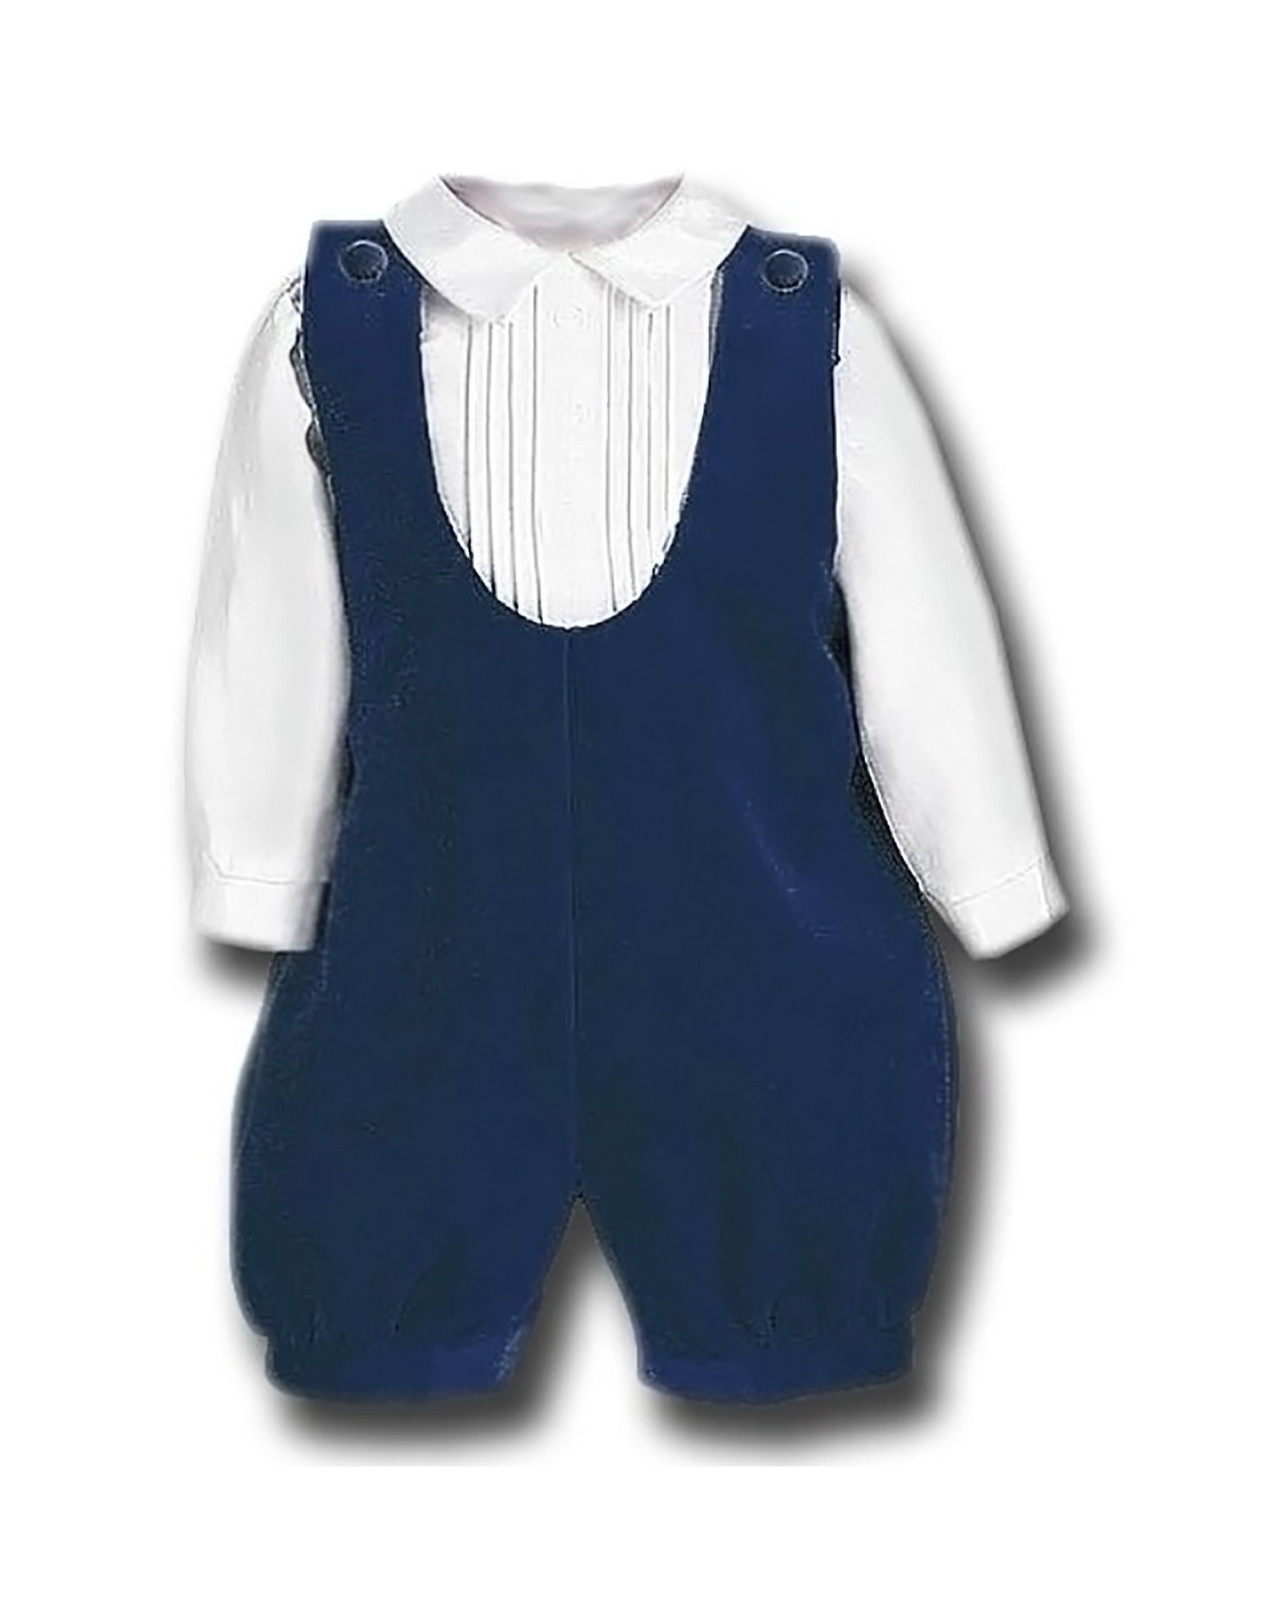 Pierpaolo baby boy outfit